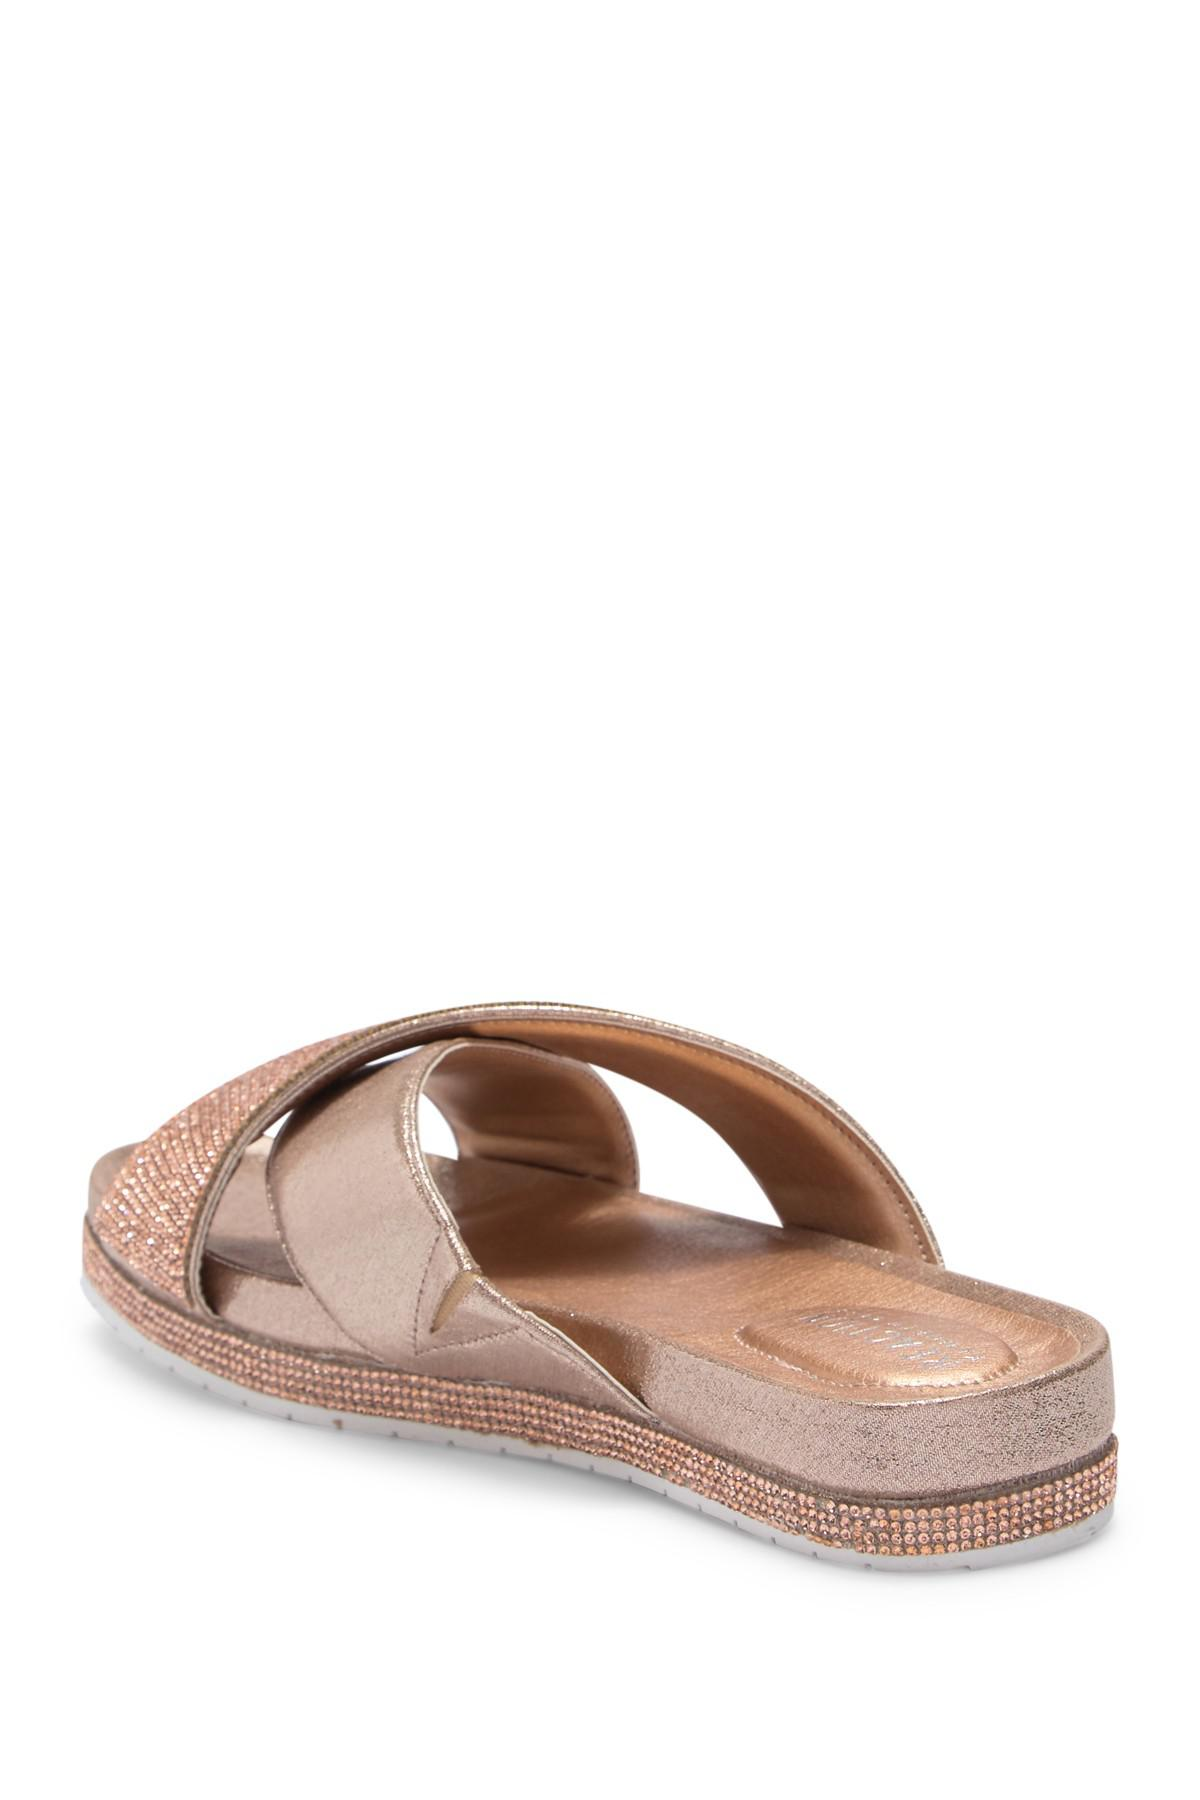 8620a041297 Lyst - Kenneth Cole Reaction Shore-ly Slide Sandal